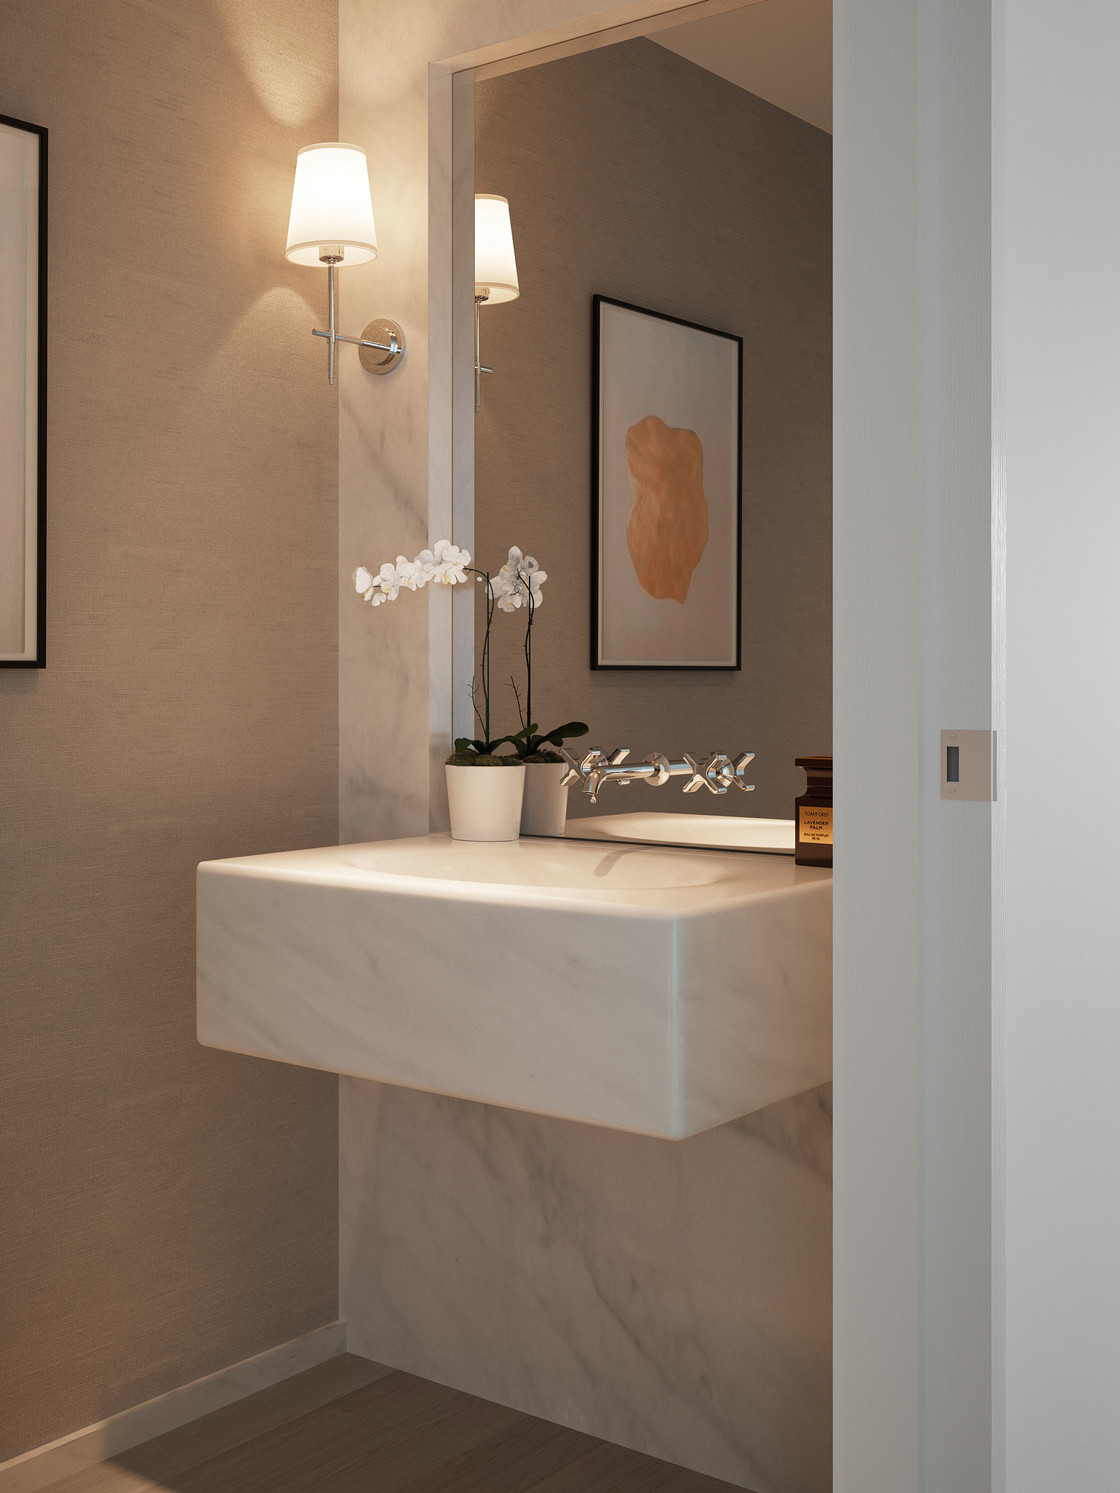 The powder room is intimate and beautifully appointed with a solid carved stone sink and feature wall of Bianco Dolomiti and a continuous solid wood floor. The design is both elegant and modern and leaves room for each owner to express his or her style.